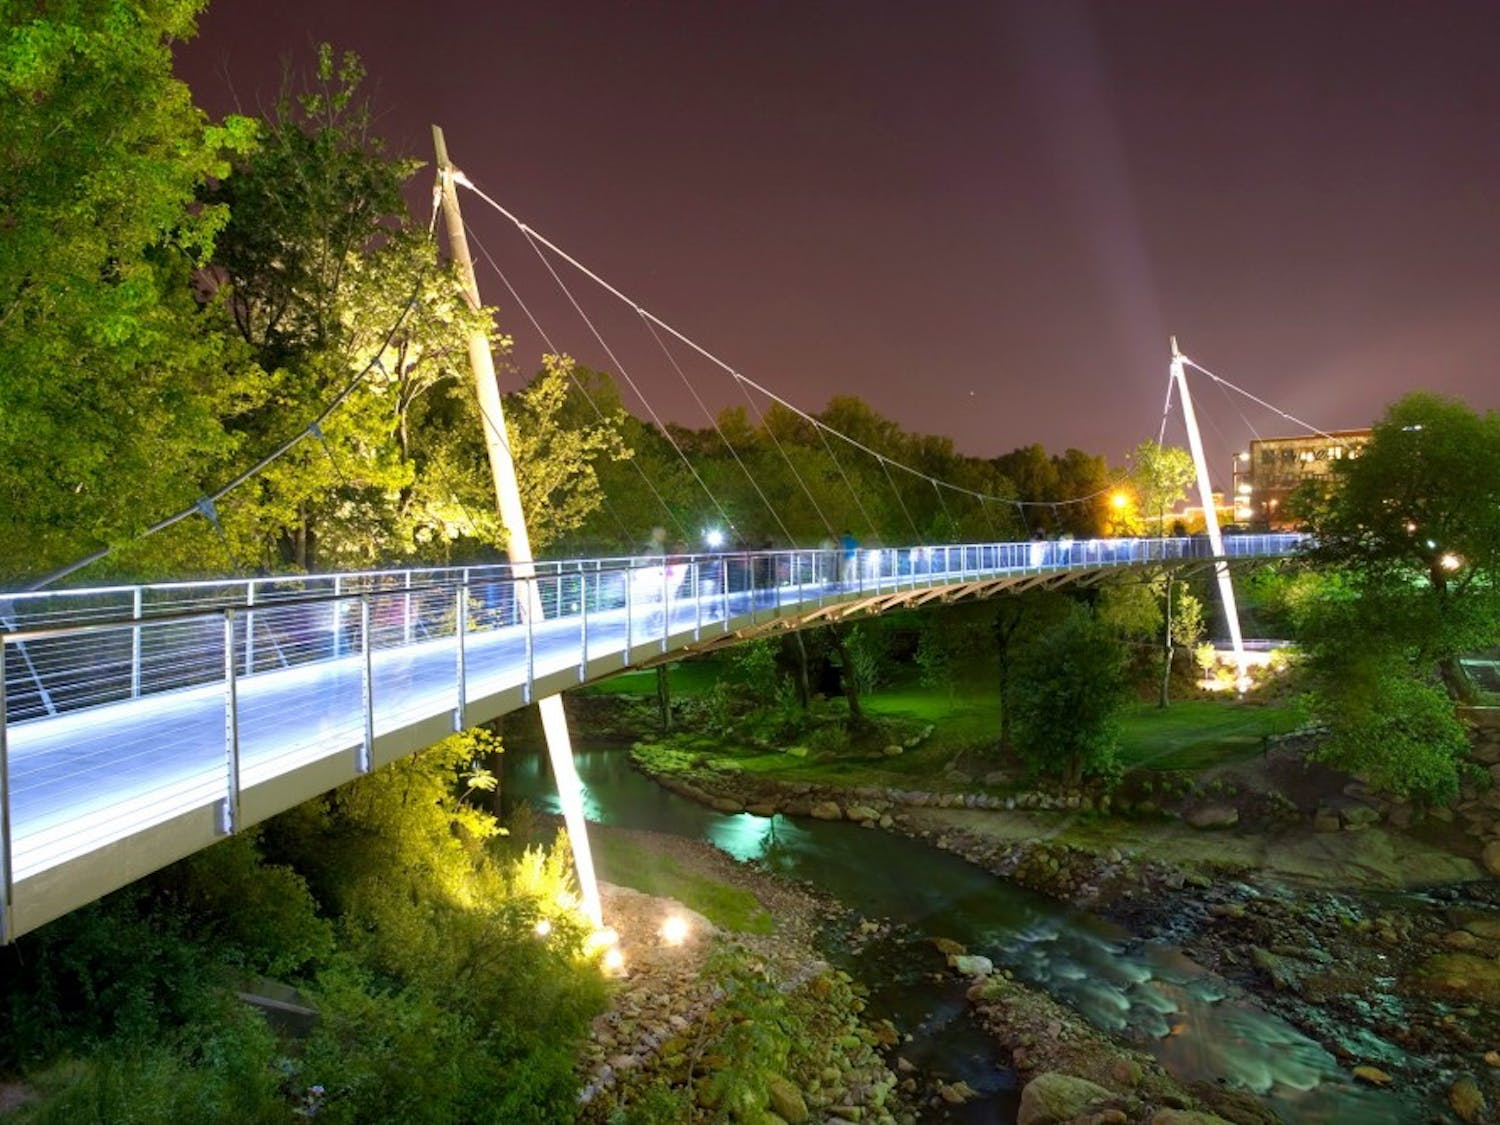 Only a two hour drive from Columbia, Greenville, SC offers tasty ethnic cuisines and a beautiful view.